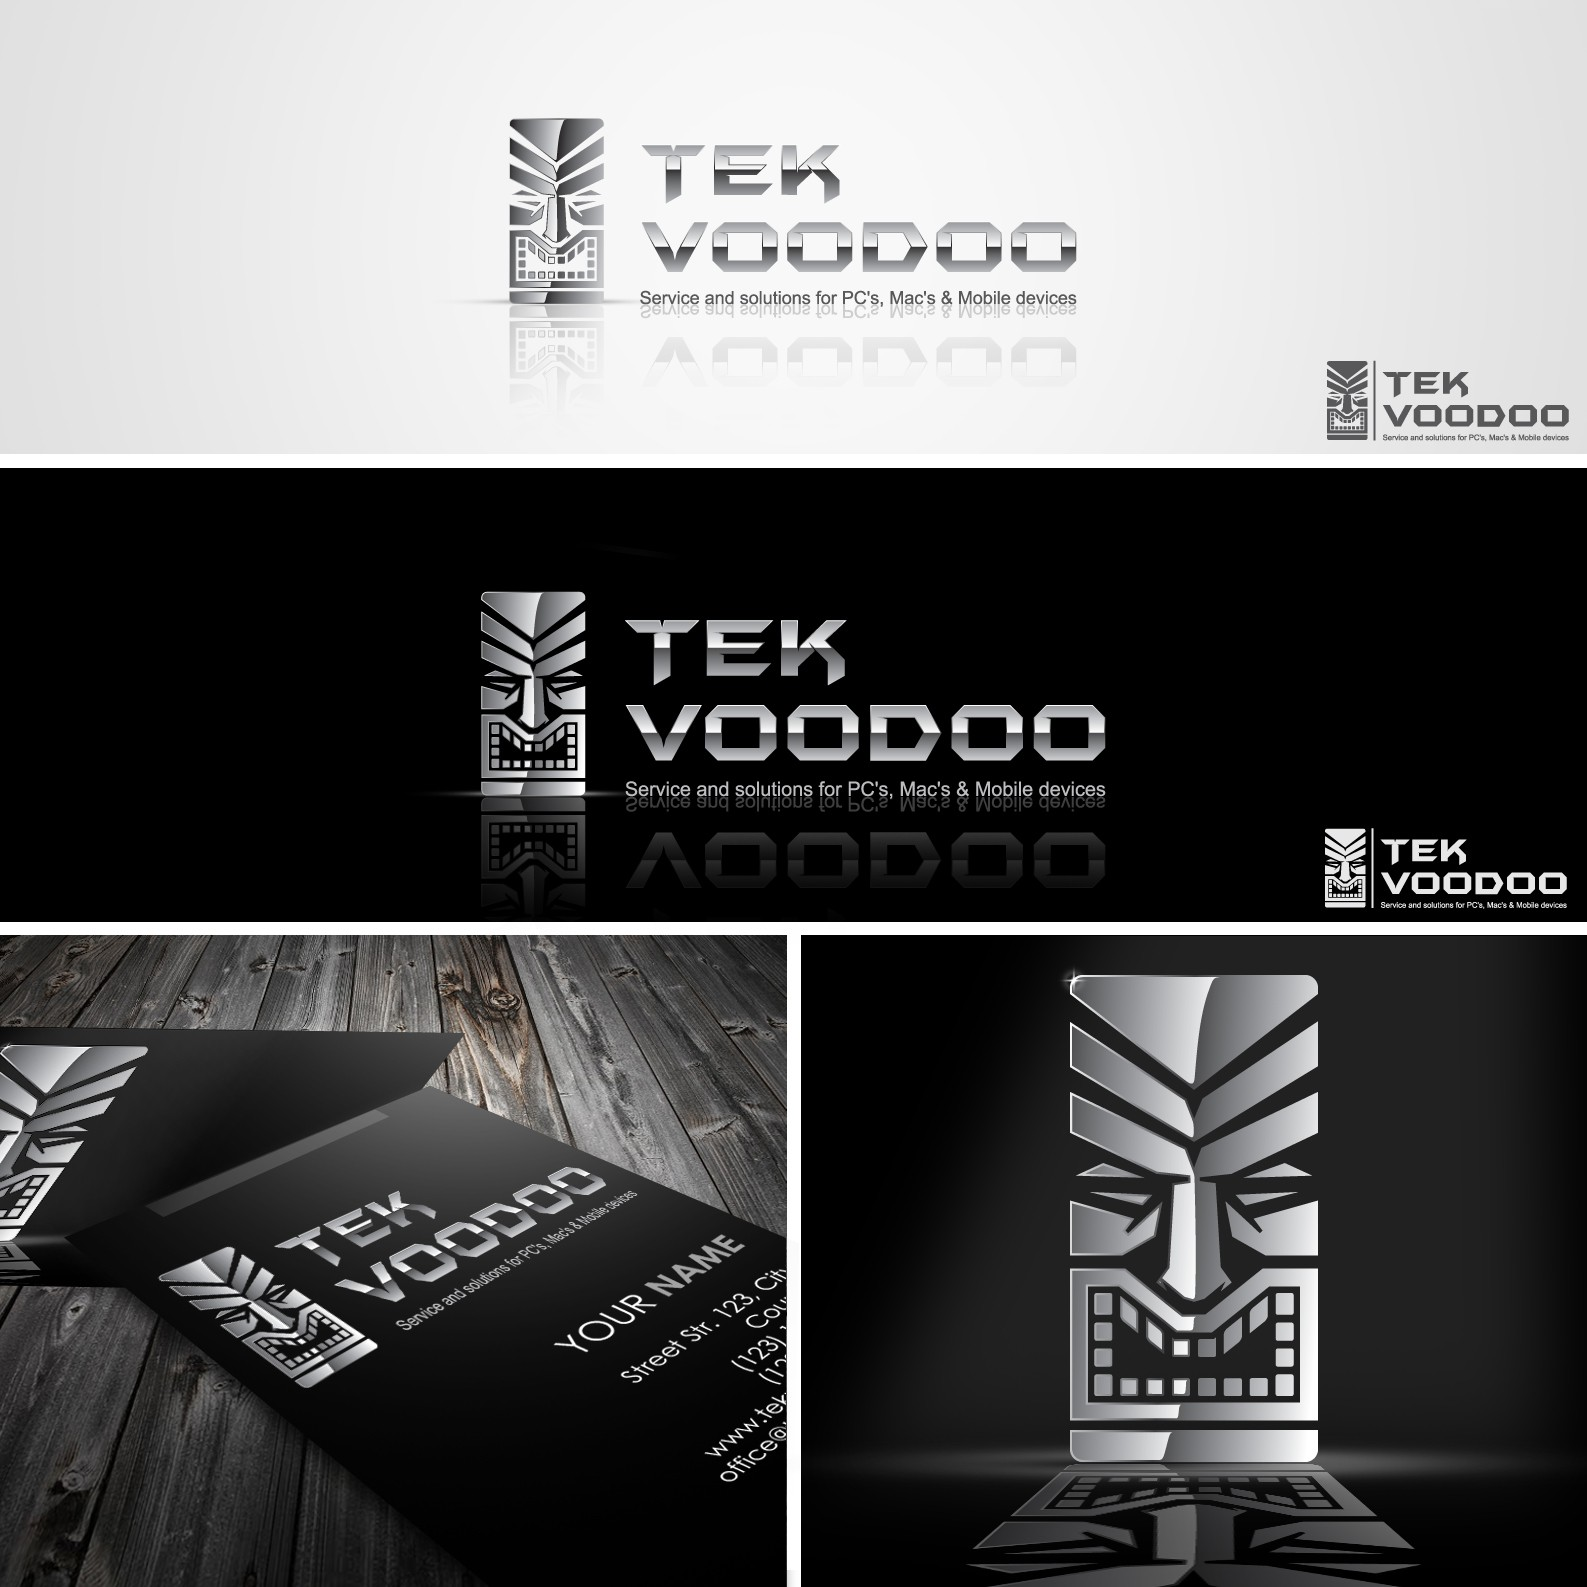 Cool New Logo For Tek Voodoo - Show Me Your Stuff